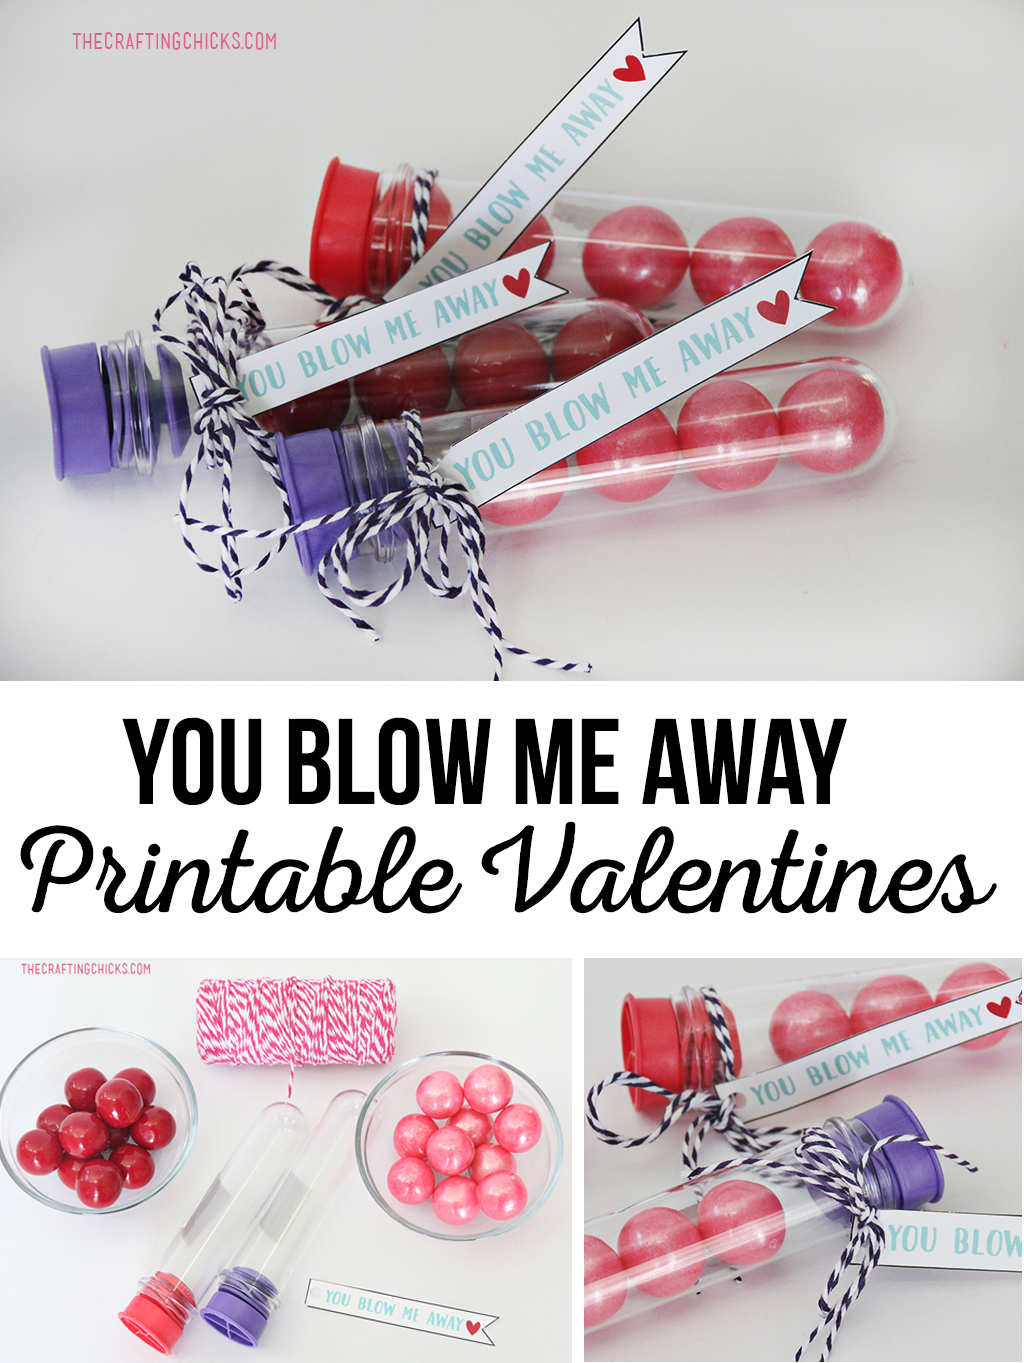 You Blow Me Away Printable Valentine